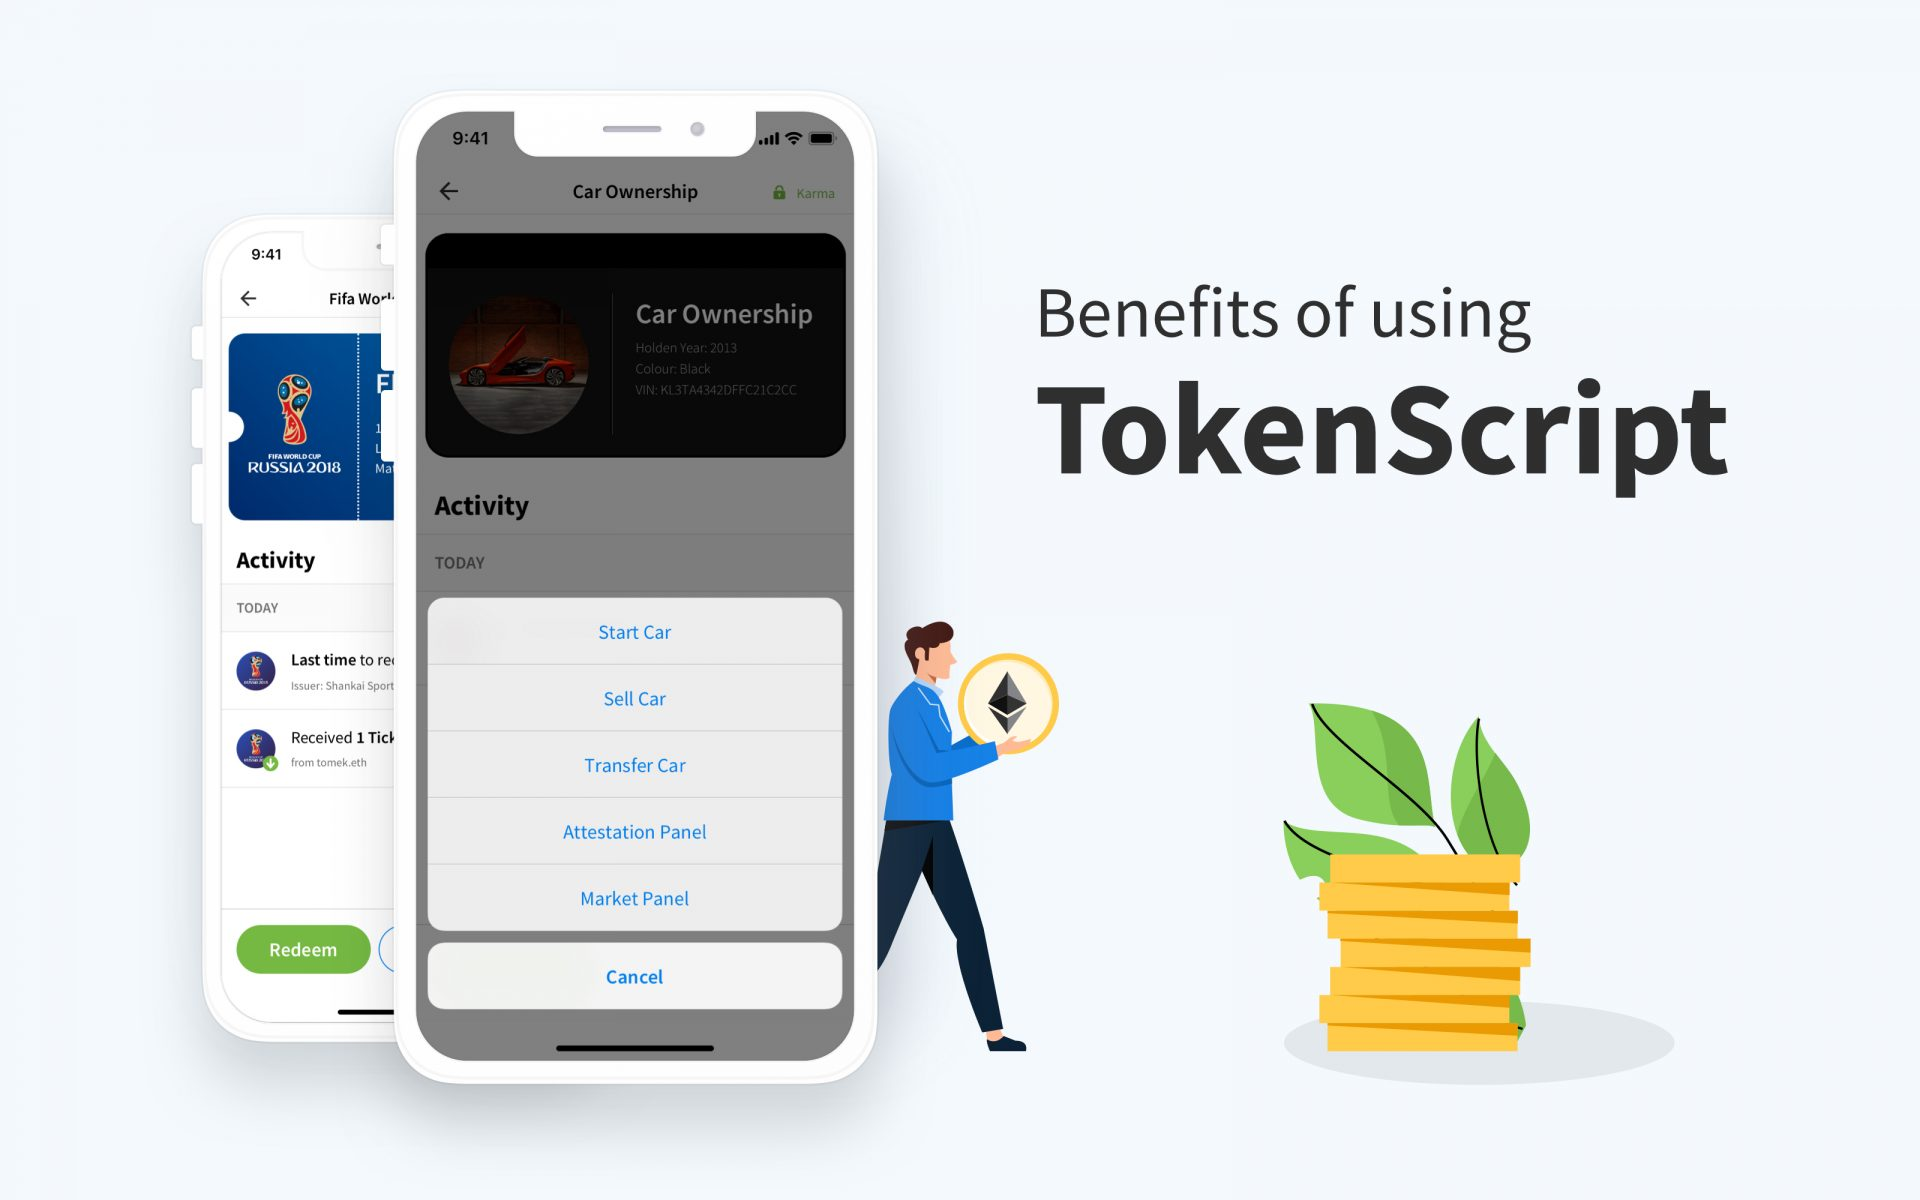 benefits of using TokenScript for your business